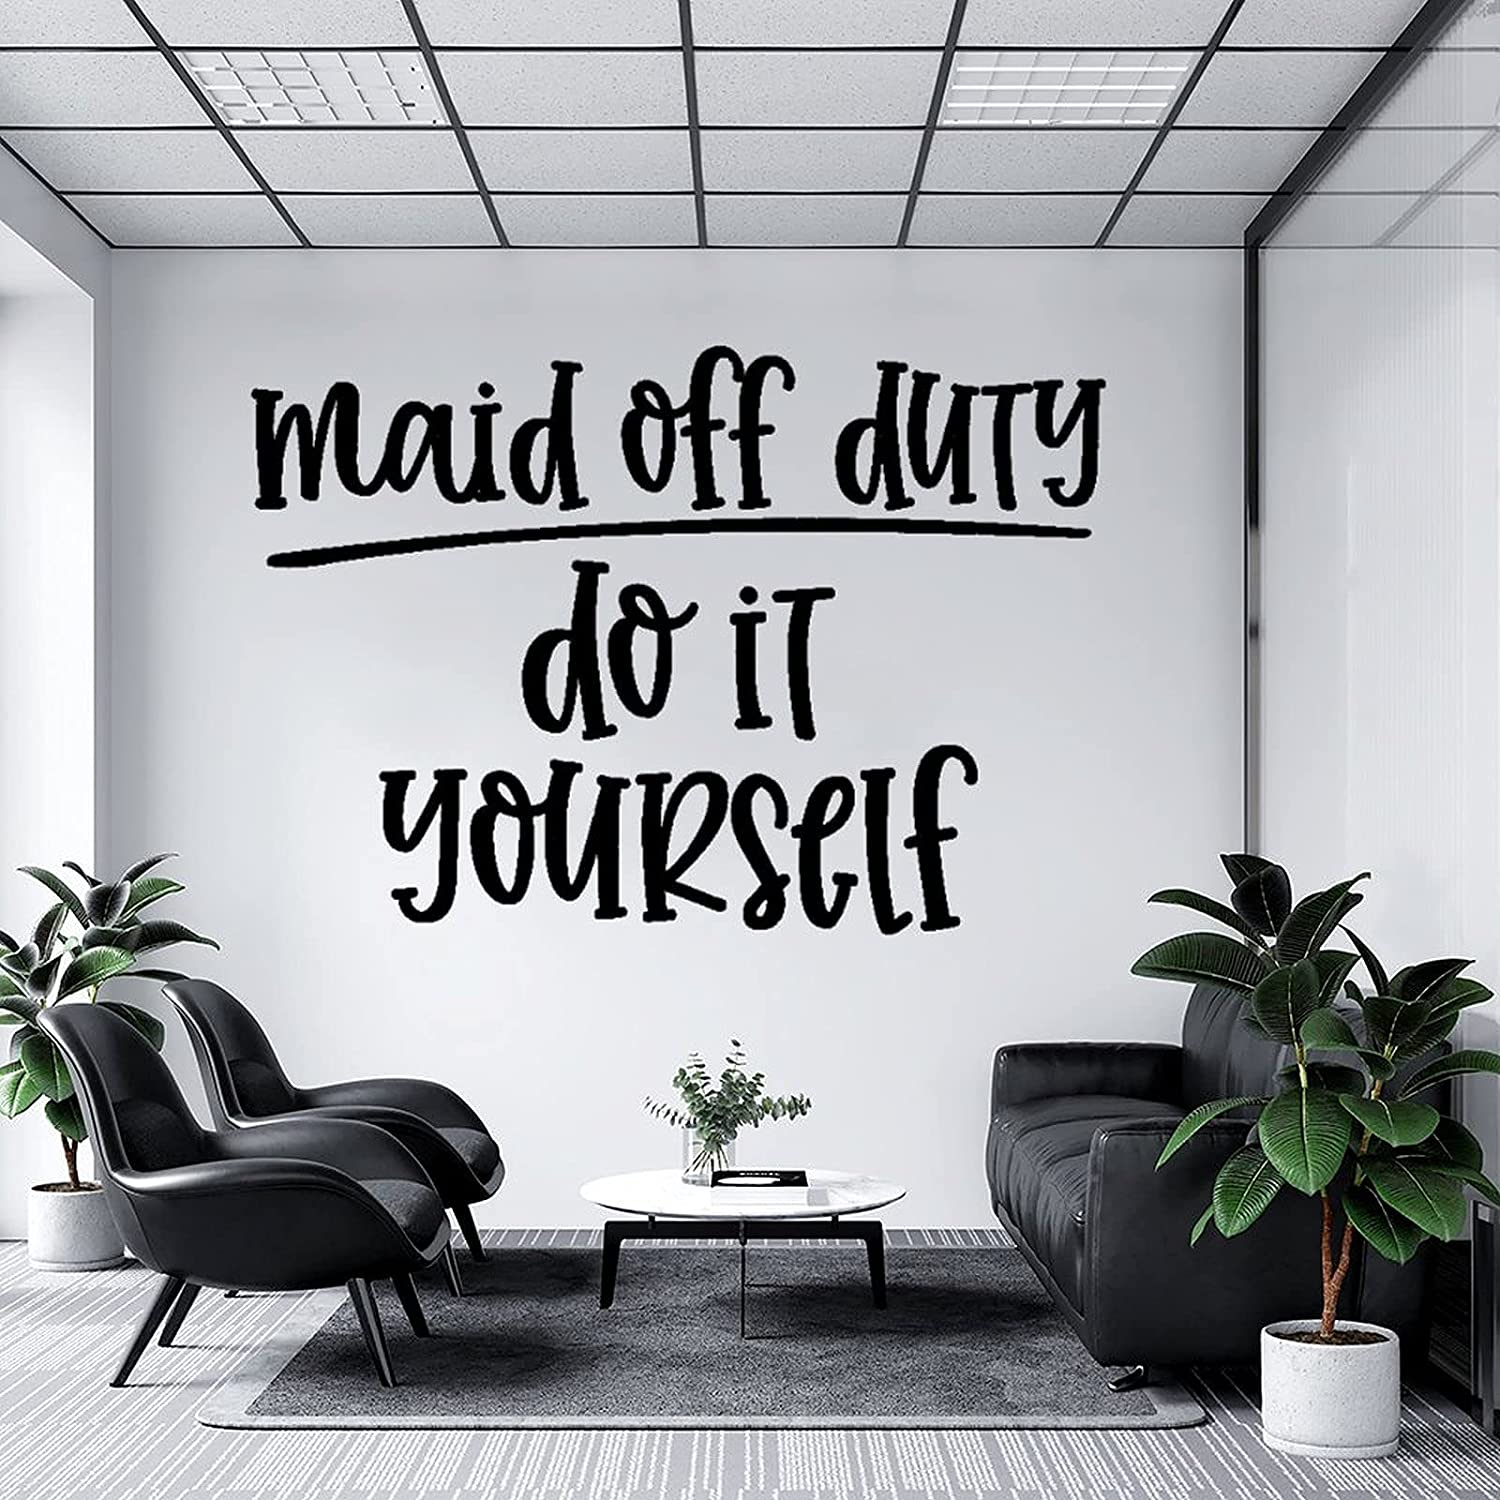 Wall Decal Maid Brand new Off Duty Do It Nursery Classroom Yourself, low-pricing Kit